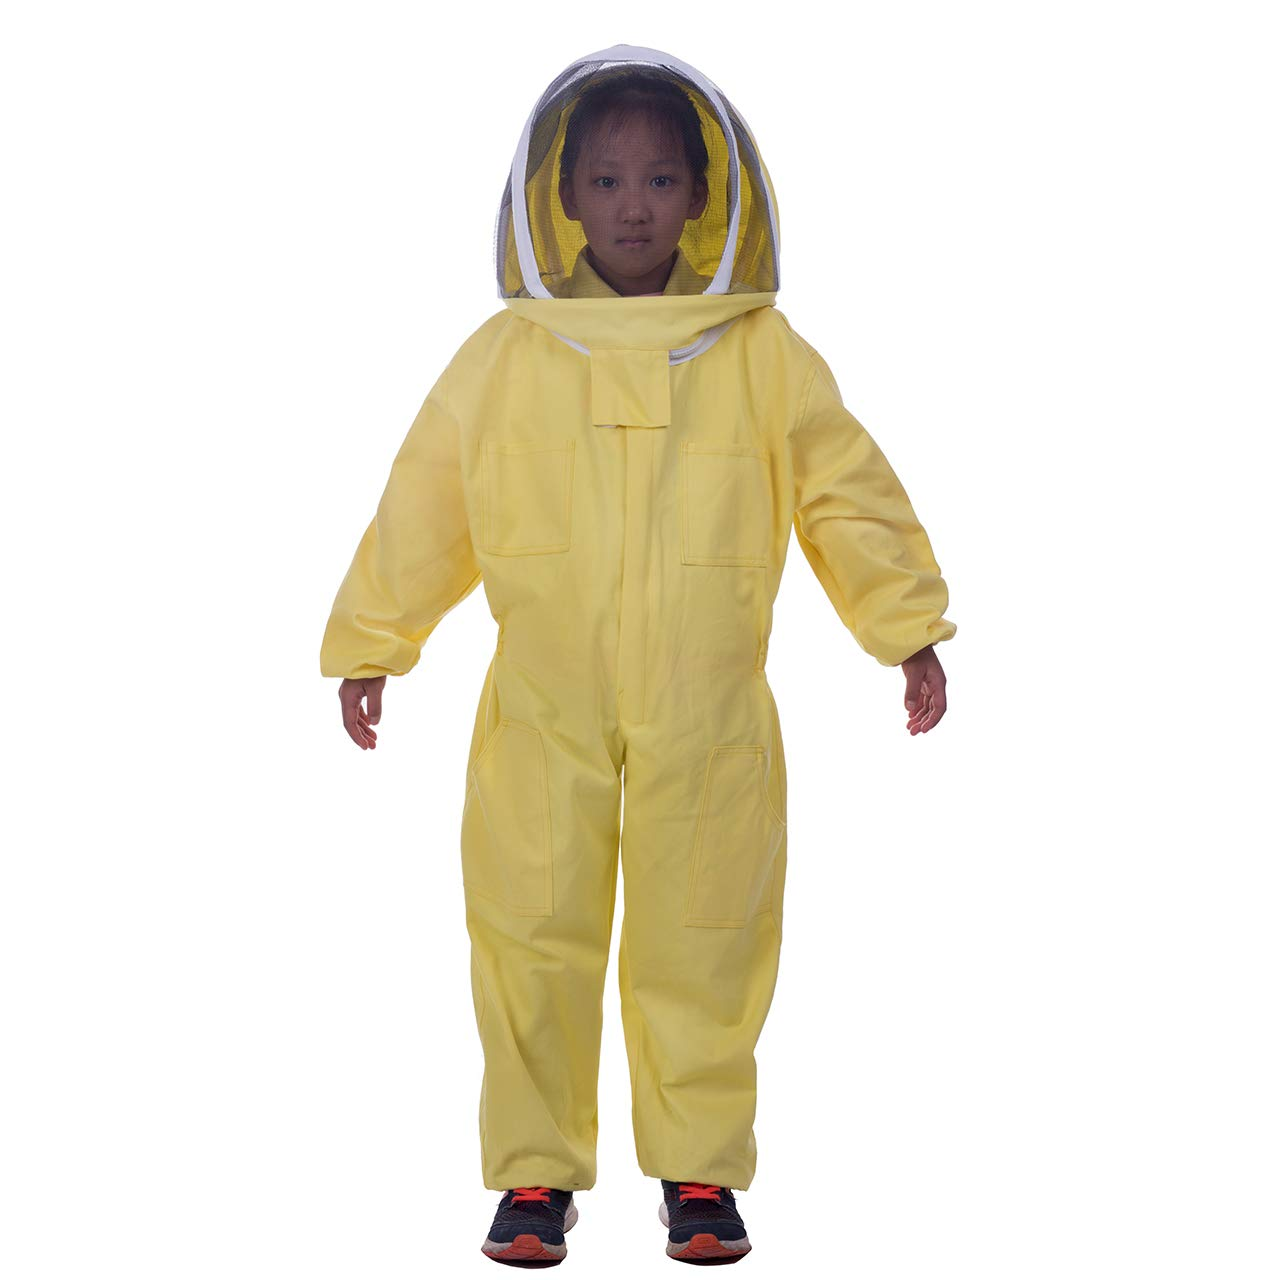 HunterBee Kids Full body Ventilated Beekeeping Suits / Children's Beekeeping Protective Cotton Suit/Self-supporting Fencing Veil hood(Yellow, 3.9ft Height)